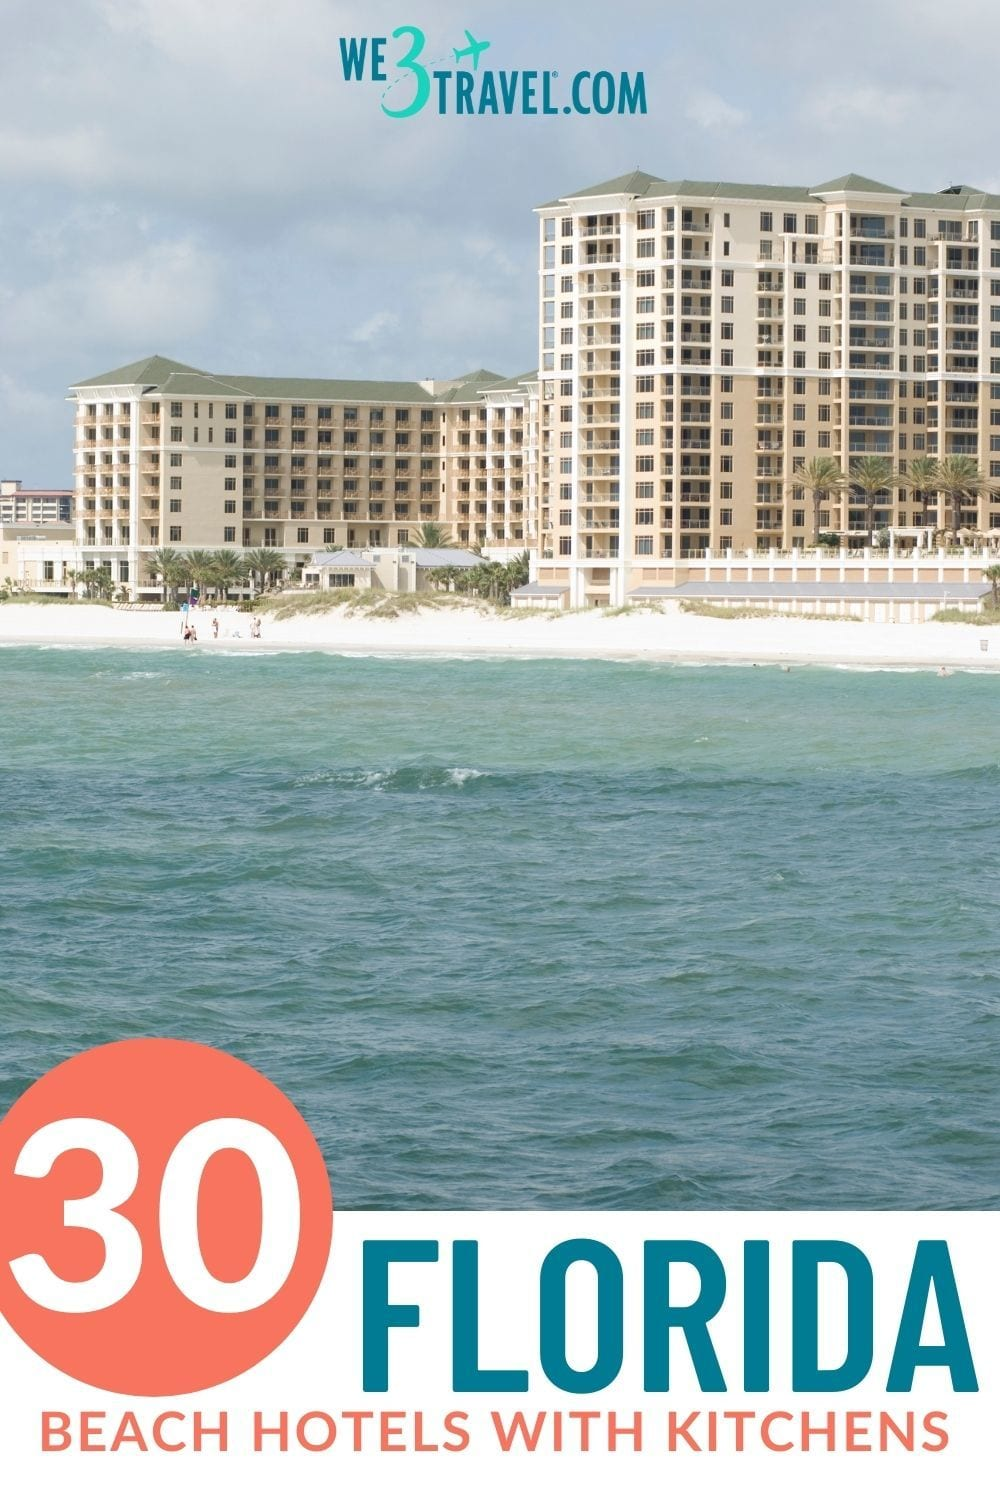 Hotel high rises on beach from water with text: 30 Florida beach hotels with kitchens